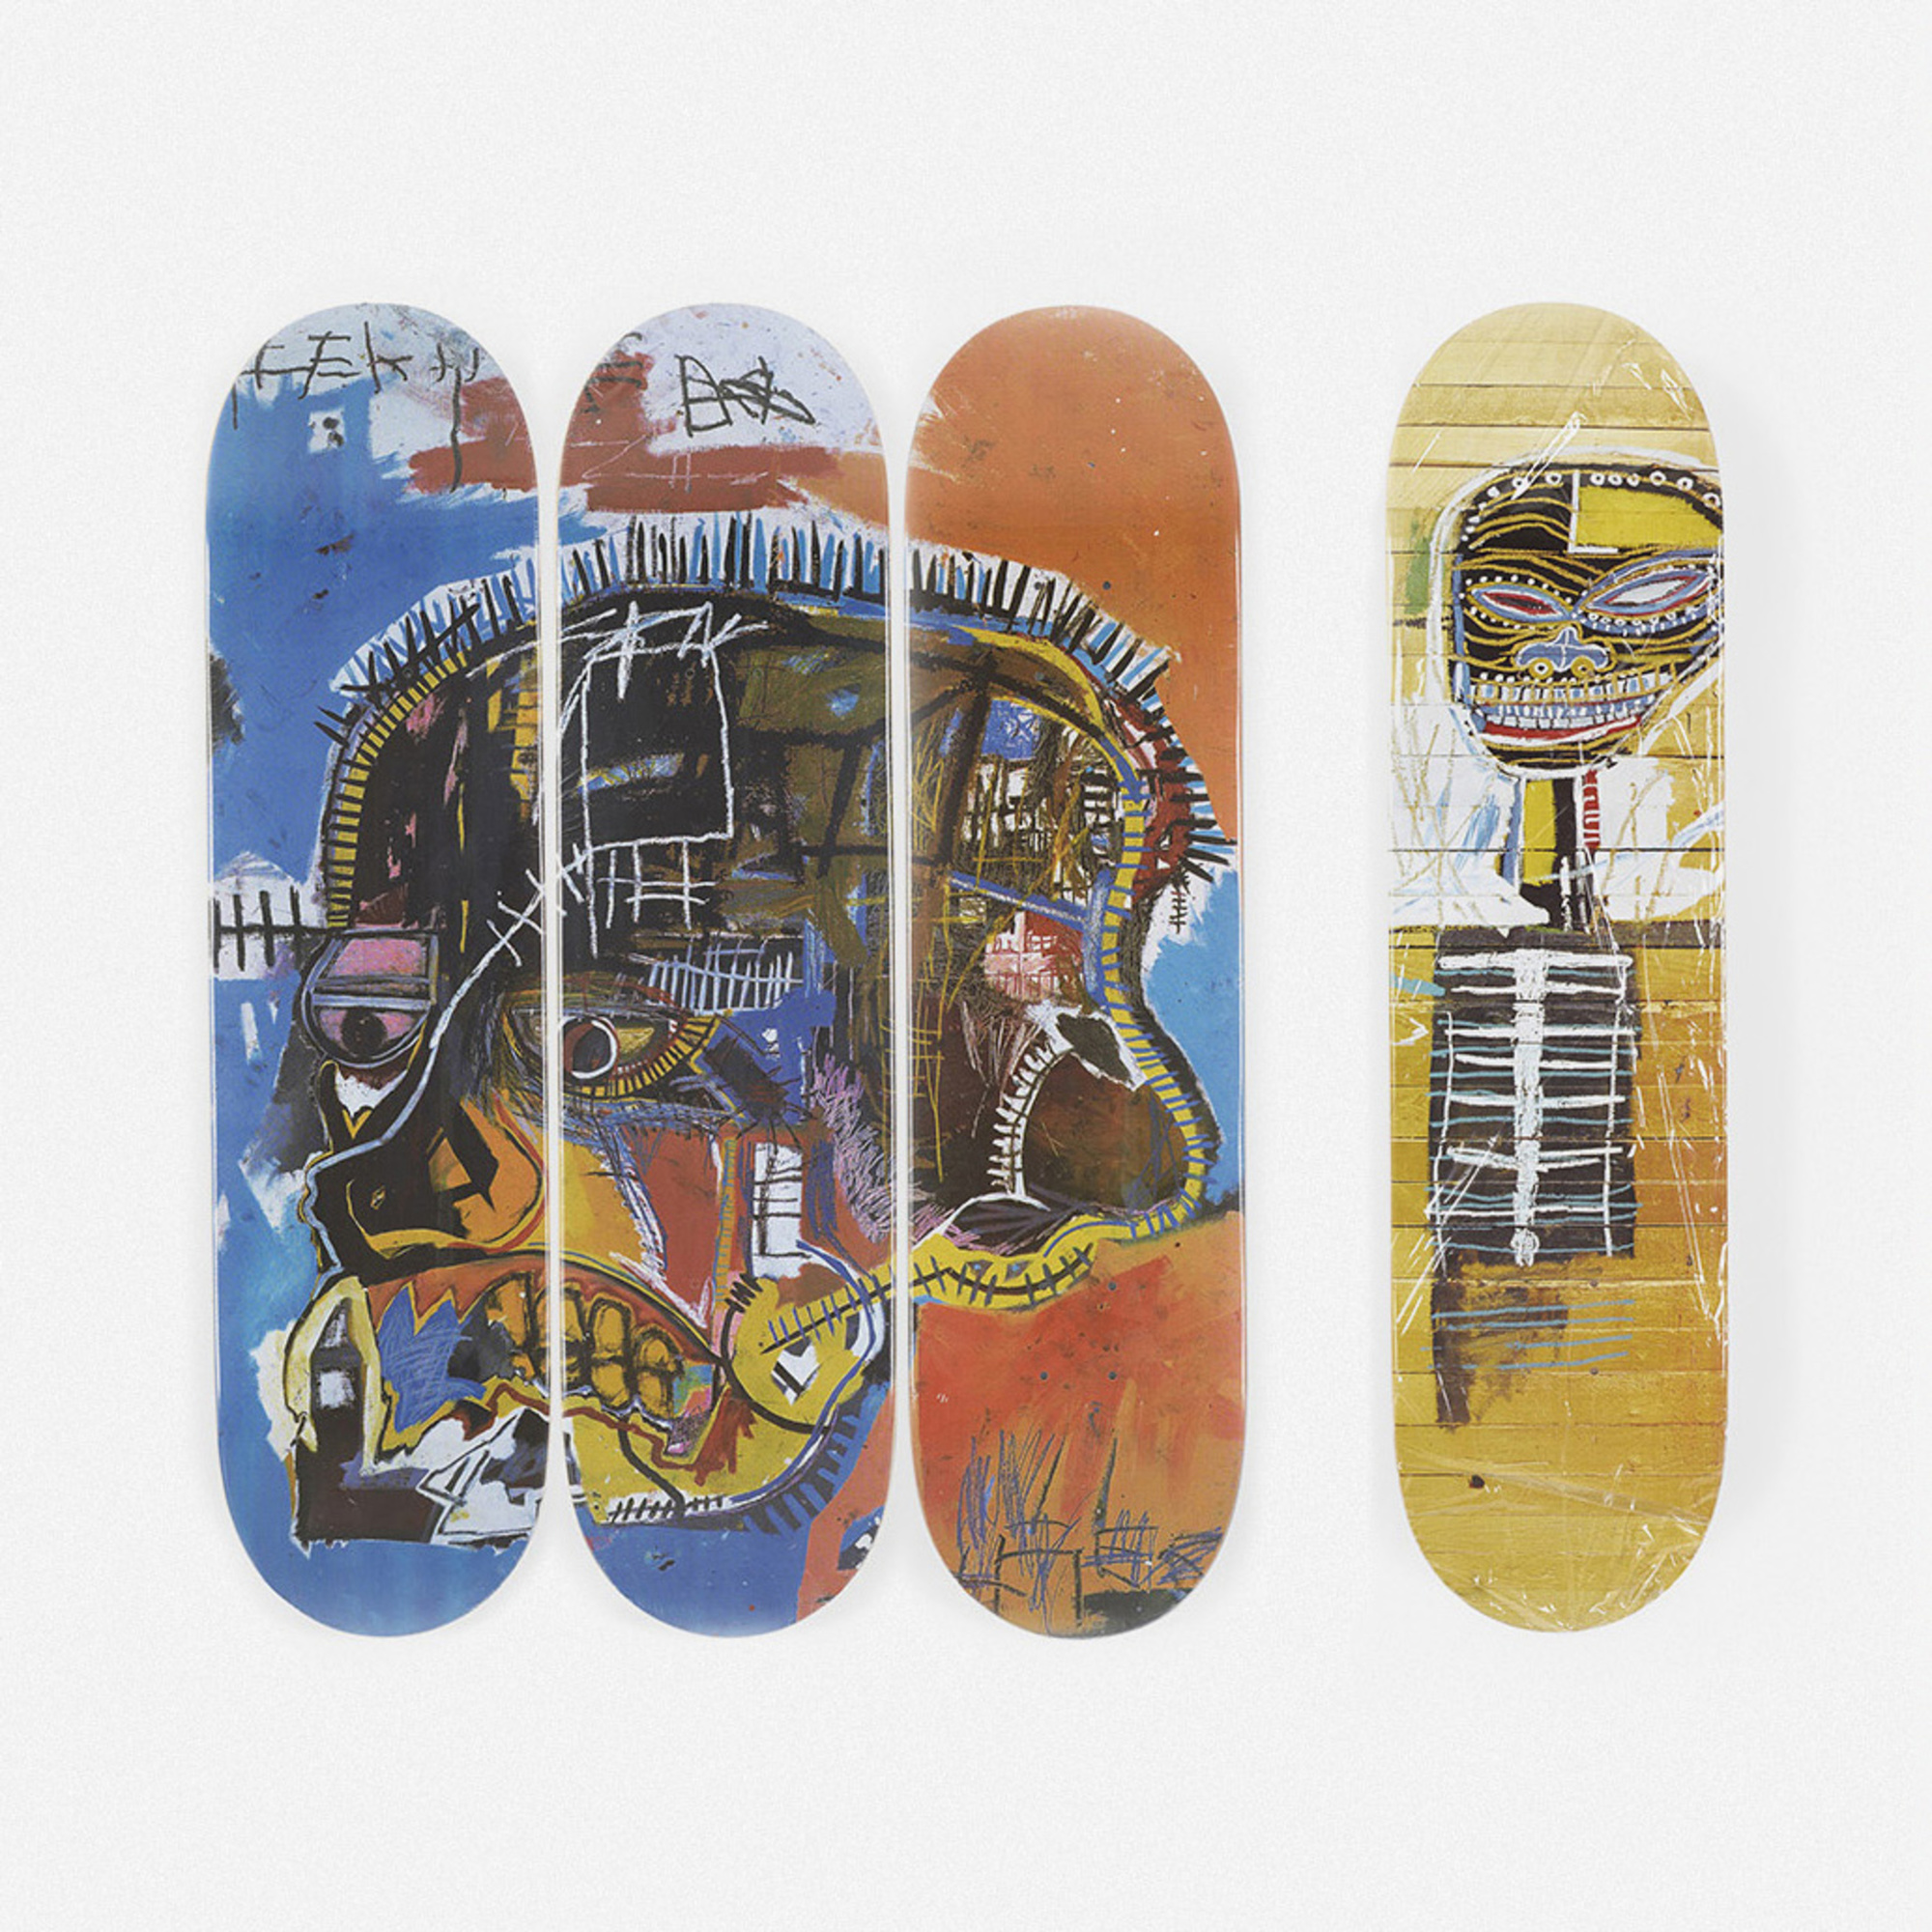 148: Jean-Michel Basquiat / skateboard decks, set of four (1 of 2)